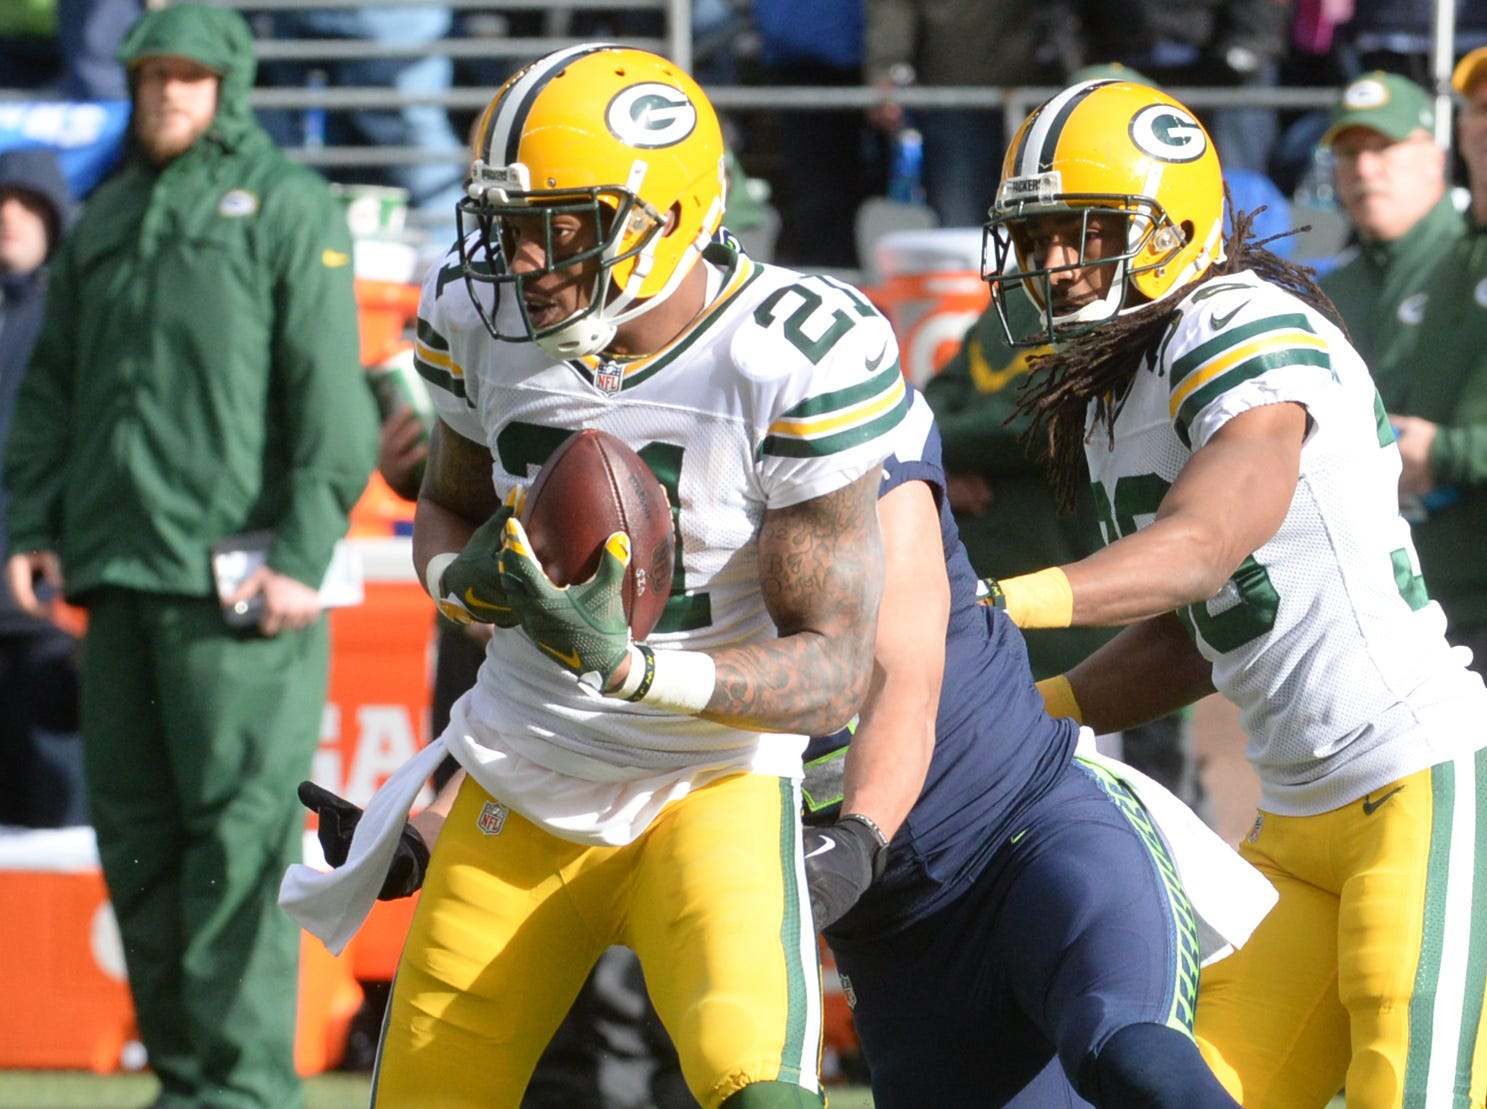 Green Bay Packers Ha Ha Clinton-Dix (21) intercepts a Russell Wilson pass in the second quarter against the Seattle Seahawks at CenturyLink FIeld in Seattle January 18, 2015.